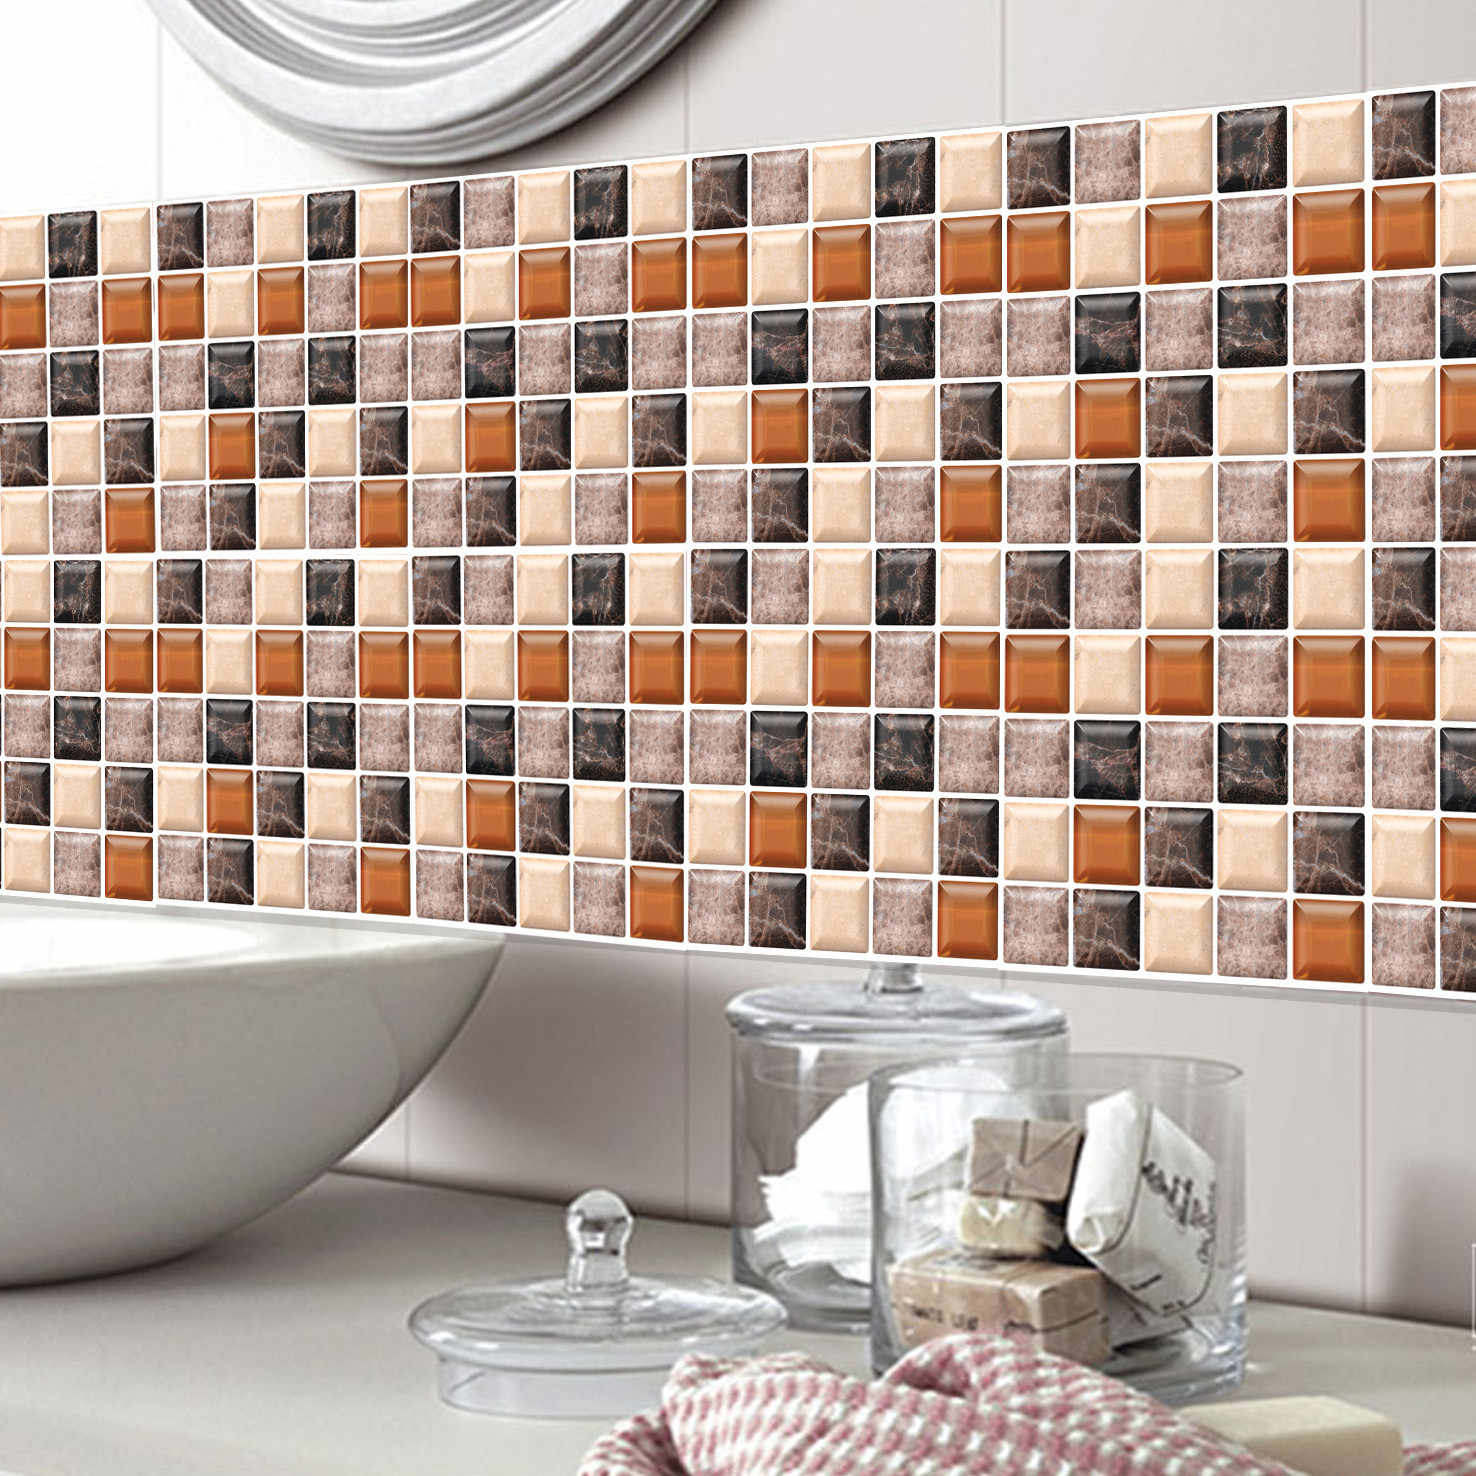 - Kitchen Bathroom 3d Stickers Waterproof Self Adhesive Mosaic Wall